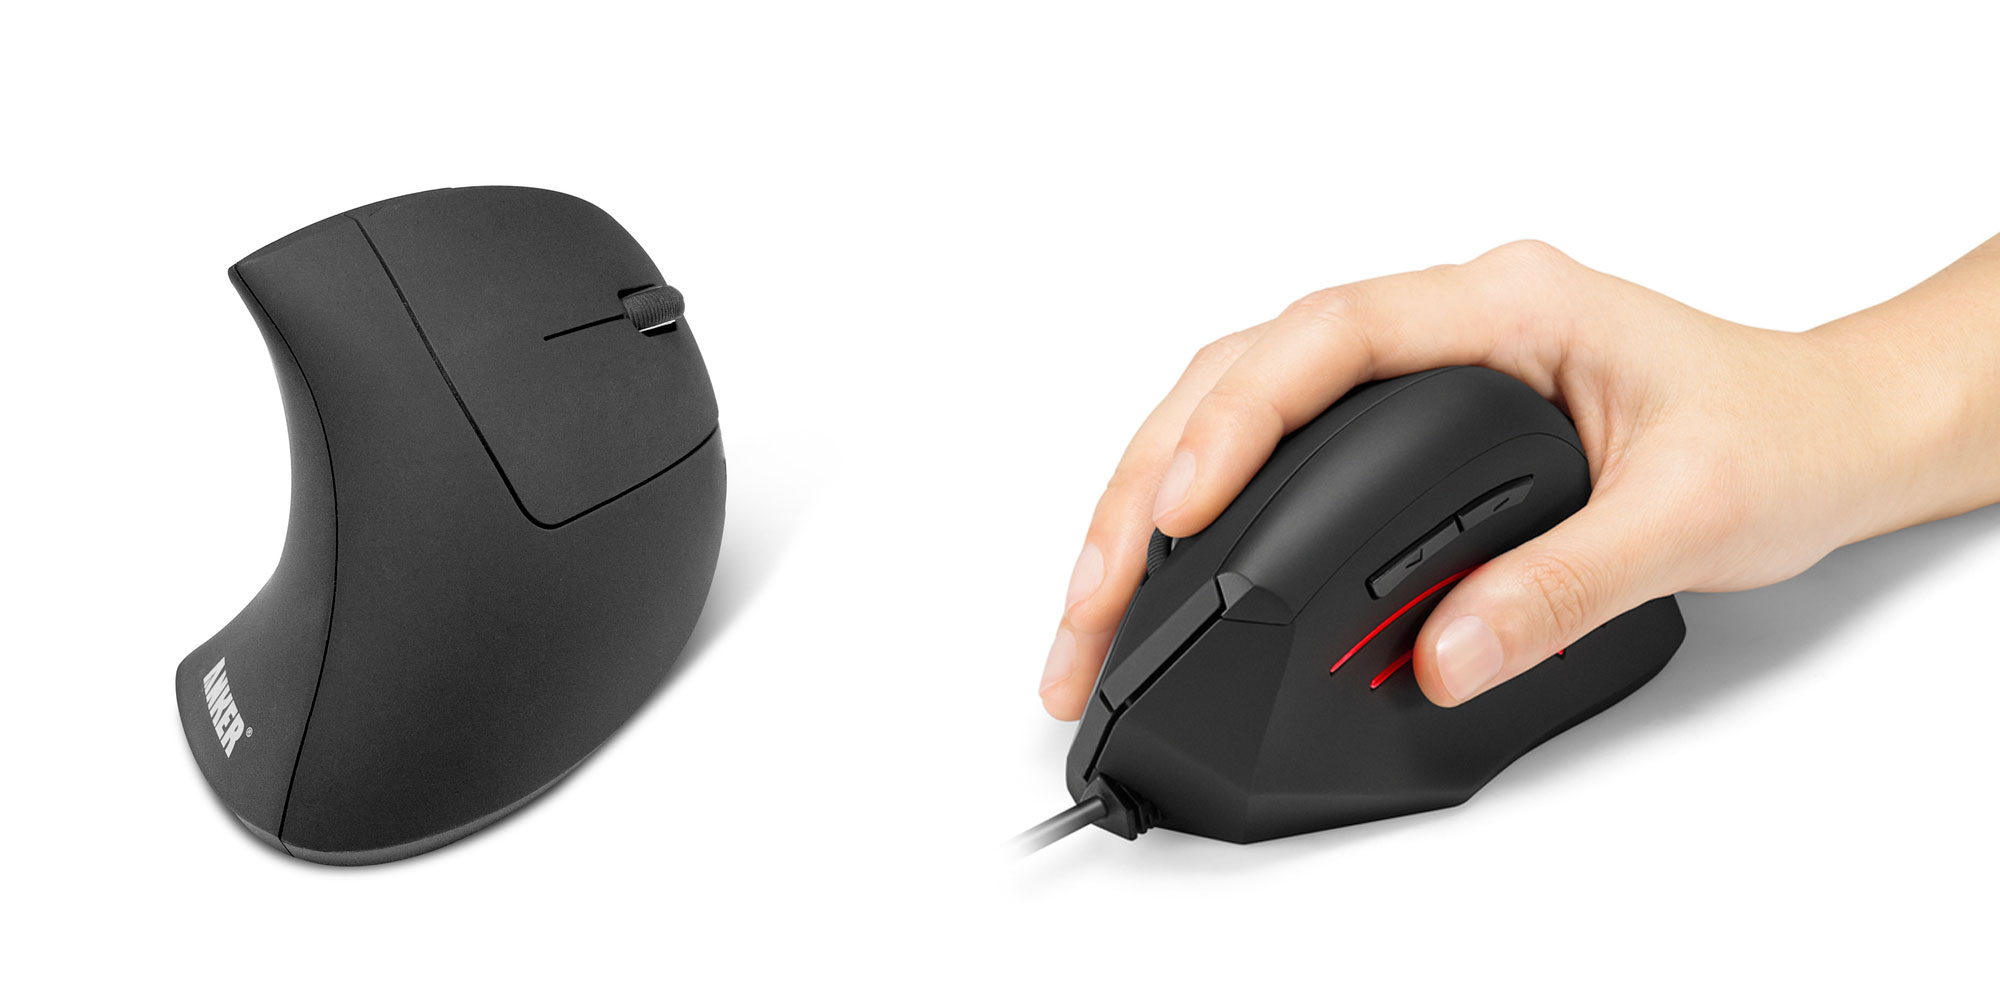 Anker's ergonomic vertical mouse drops to $10.50 shipped (30% off), more from $13